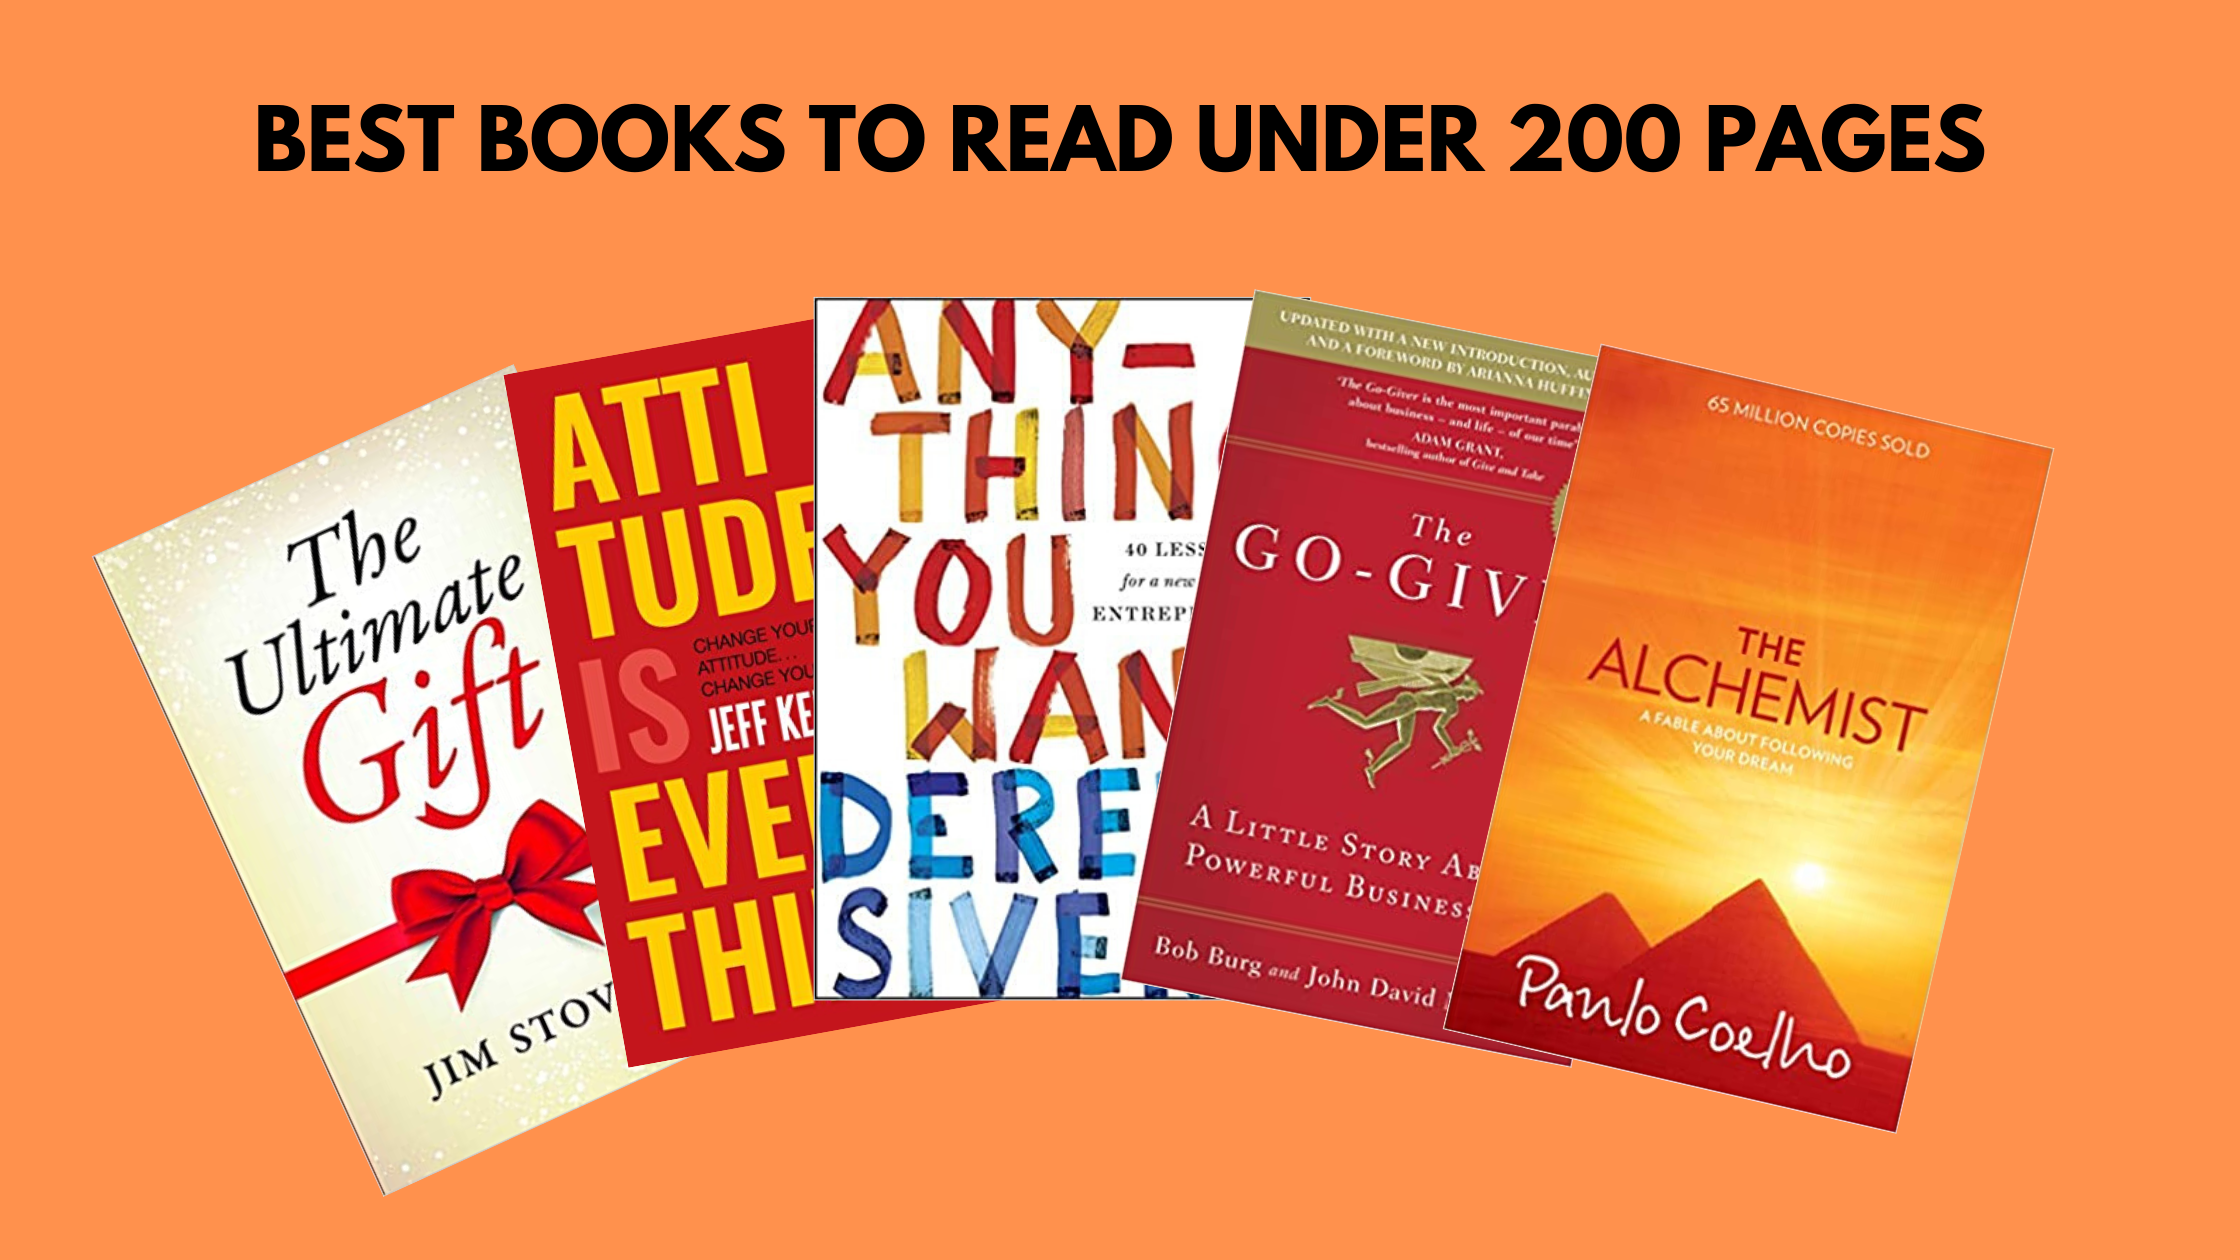 Best Books Under 200 Pages To Read The Improvement Terminal